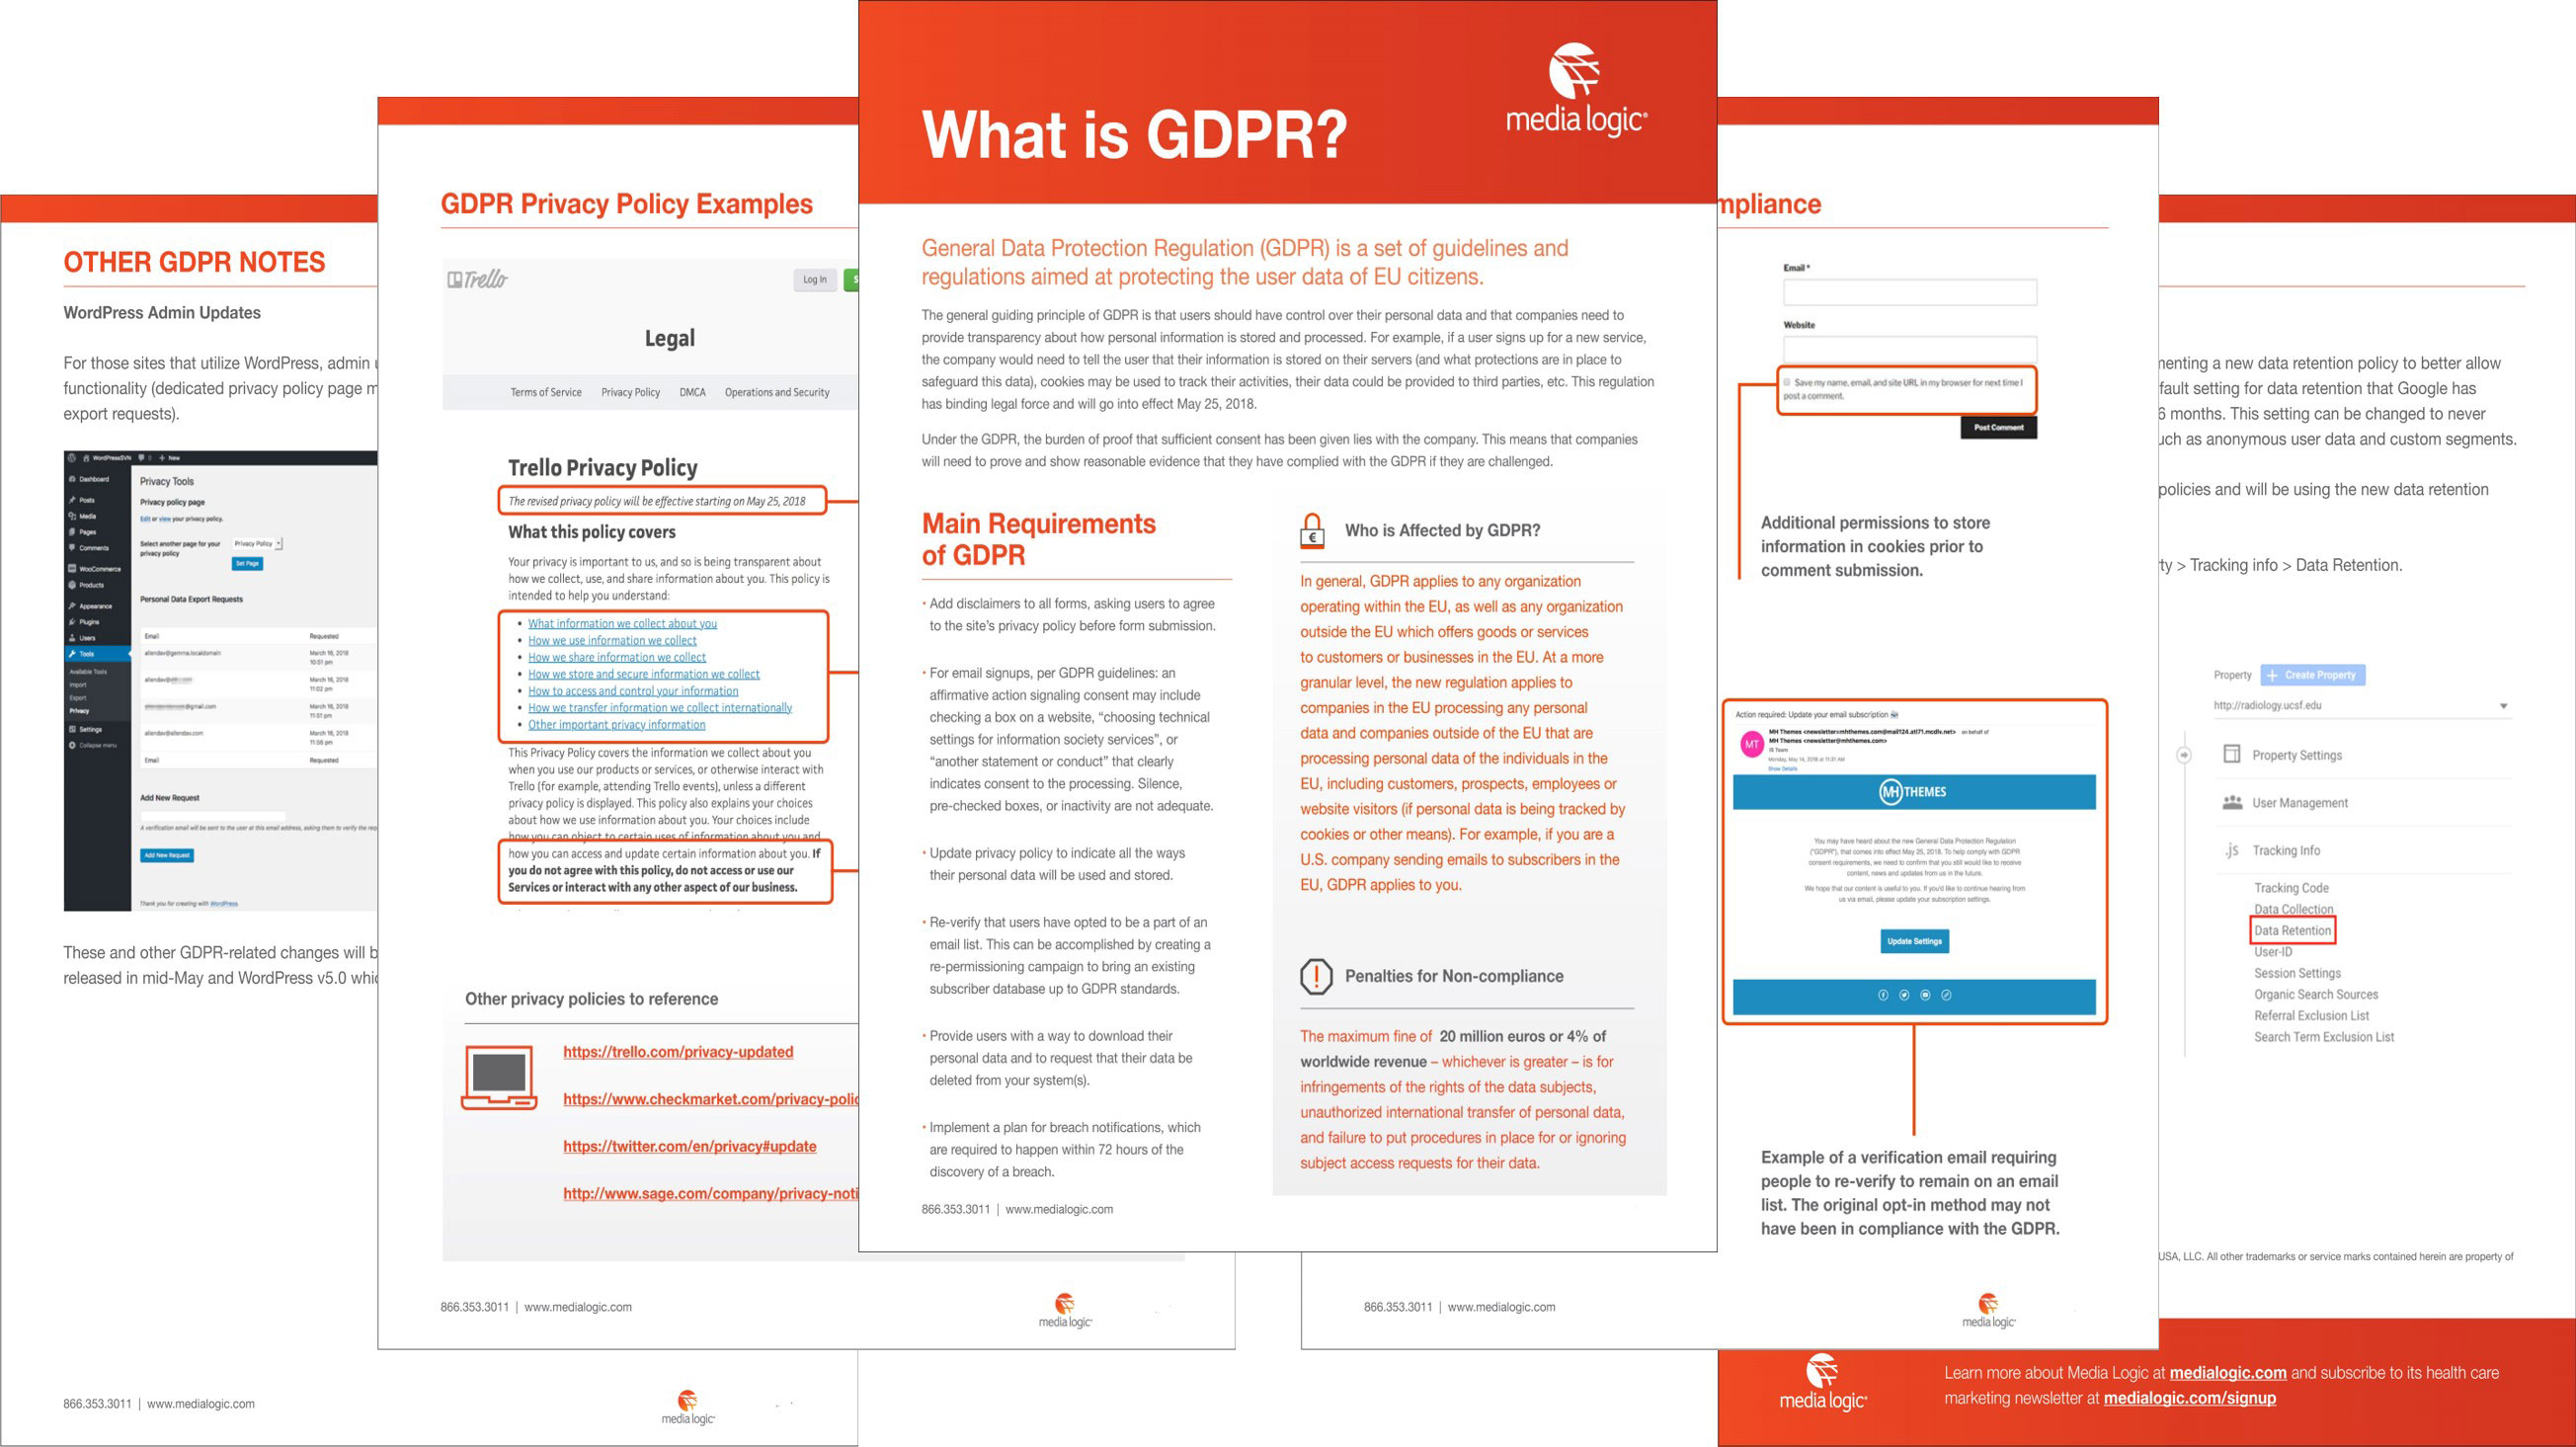 GDPR Overview from Media Logic